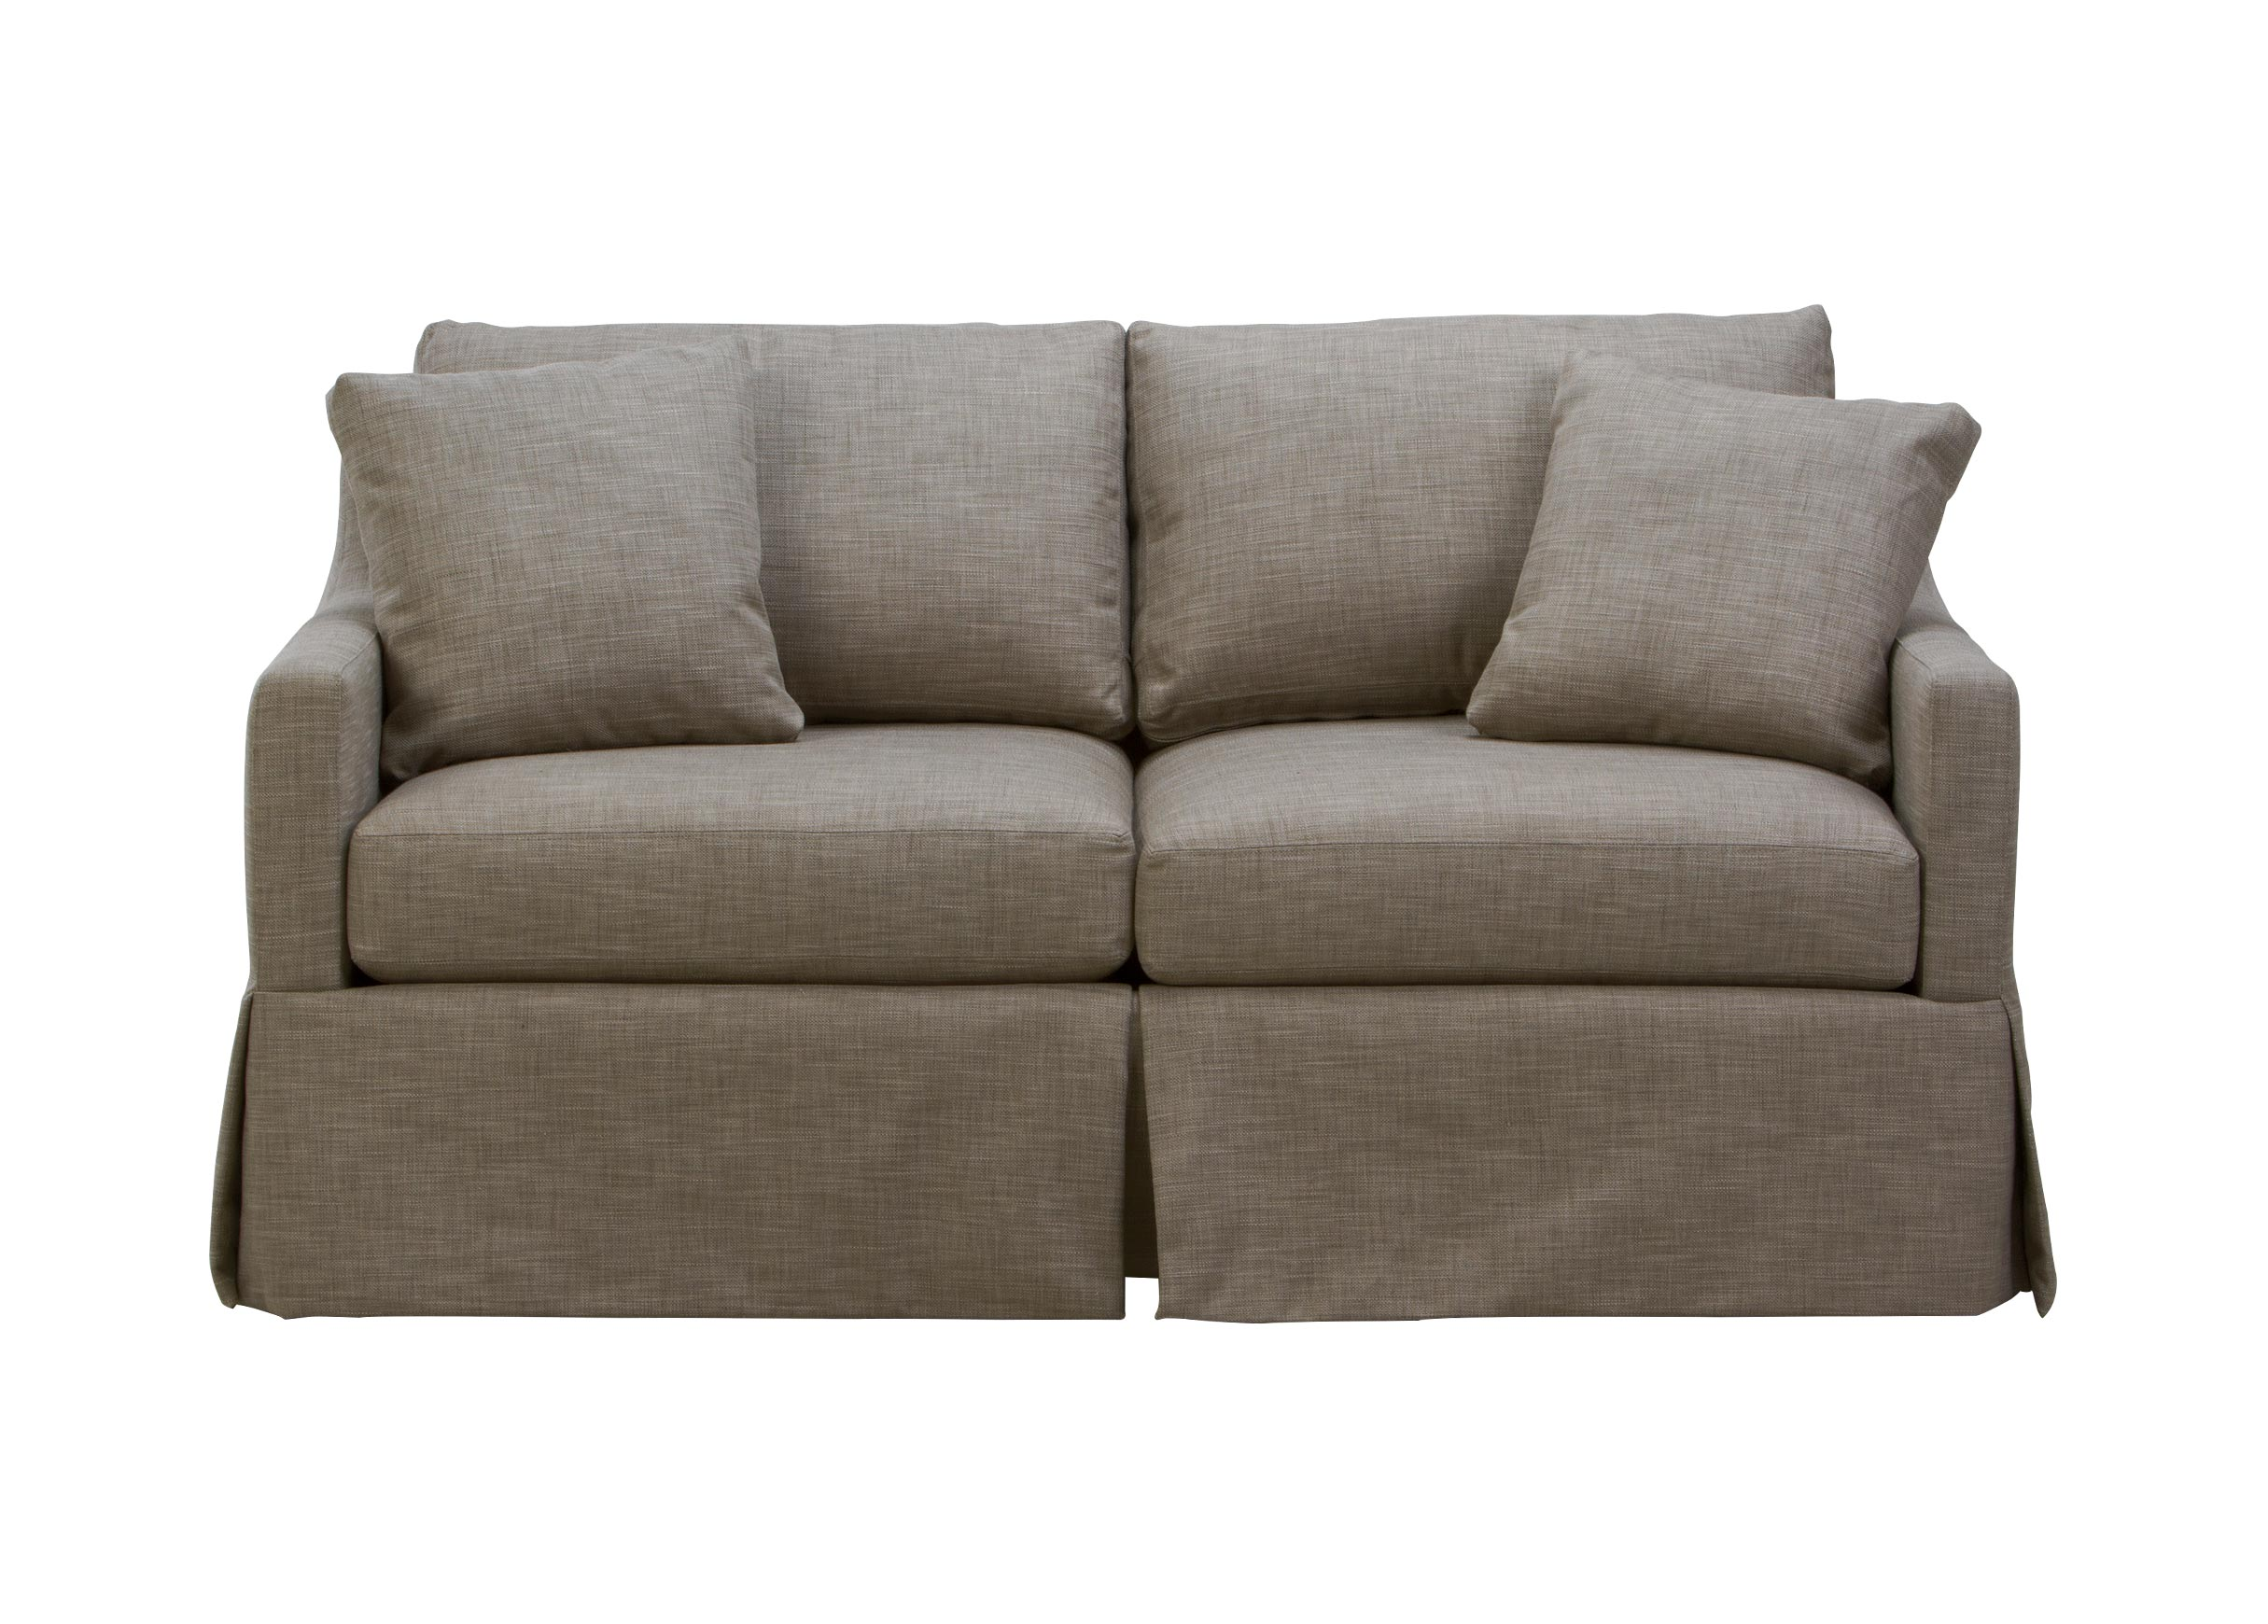 Marvelous Images Monterey Skirted Sofa , , Large_gray